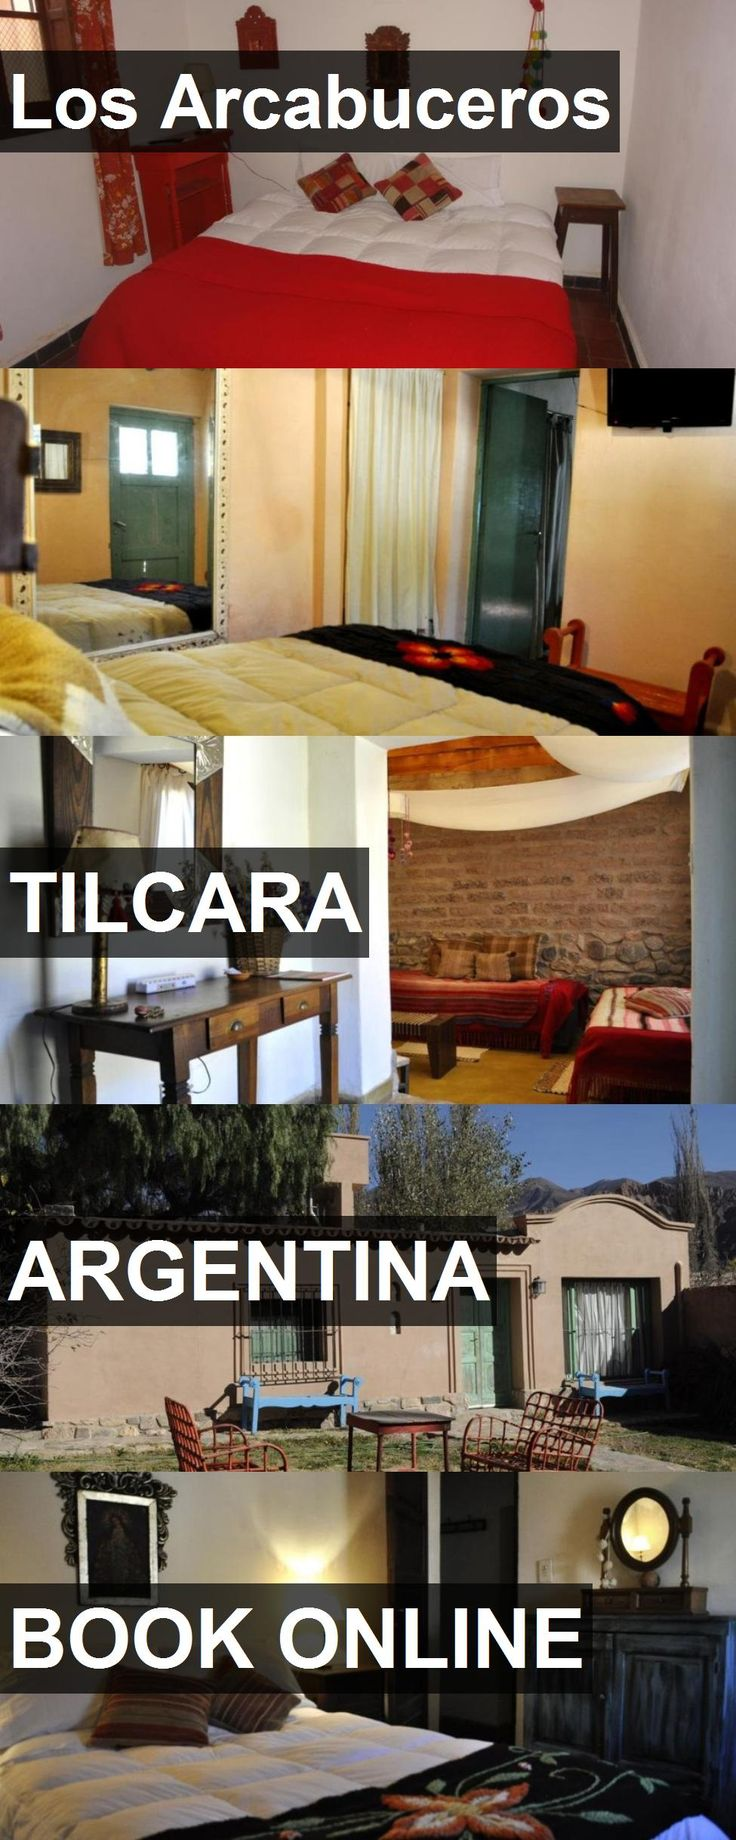 Hotel Los Arcabuceros in Tilcara, Argentina. For more information, photos, reviews and best prices please follow the link. #Argentina #Tilcara #travel #vacation #hotel